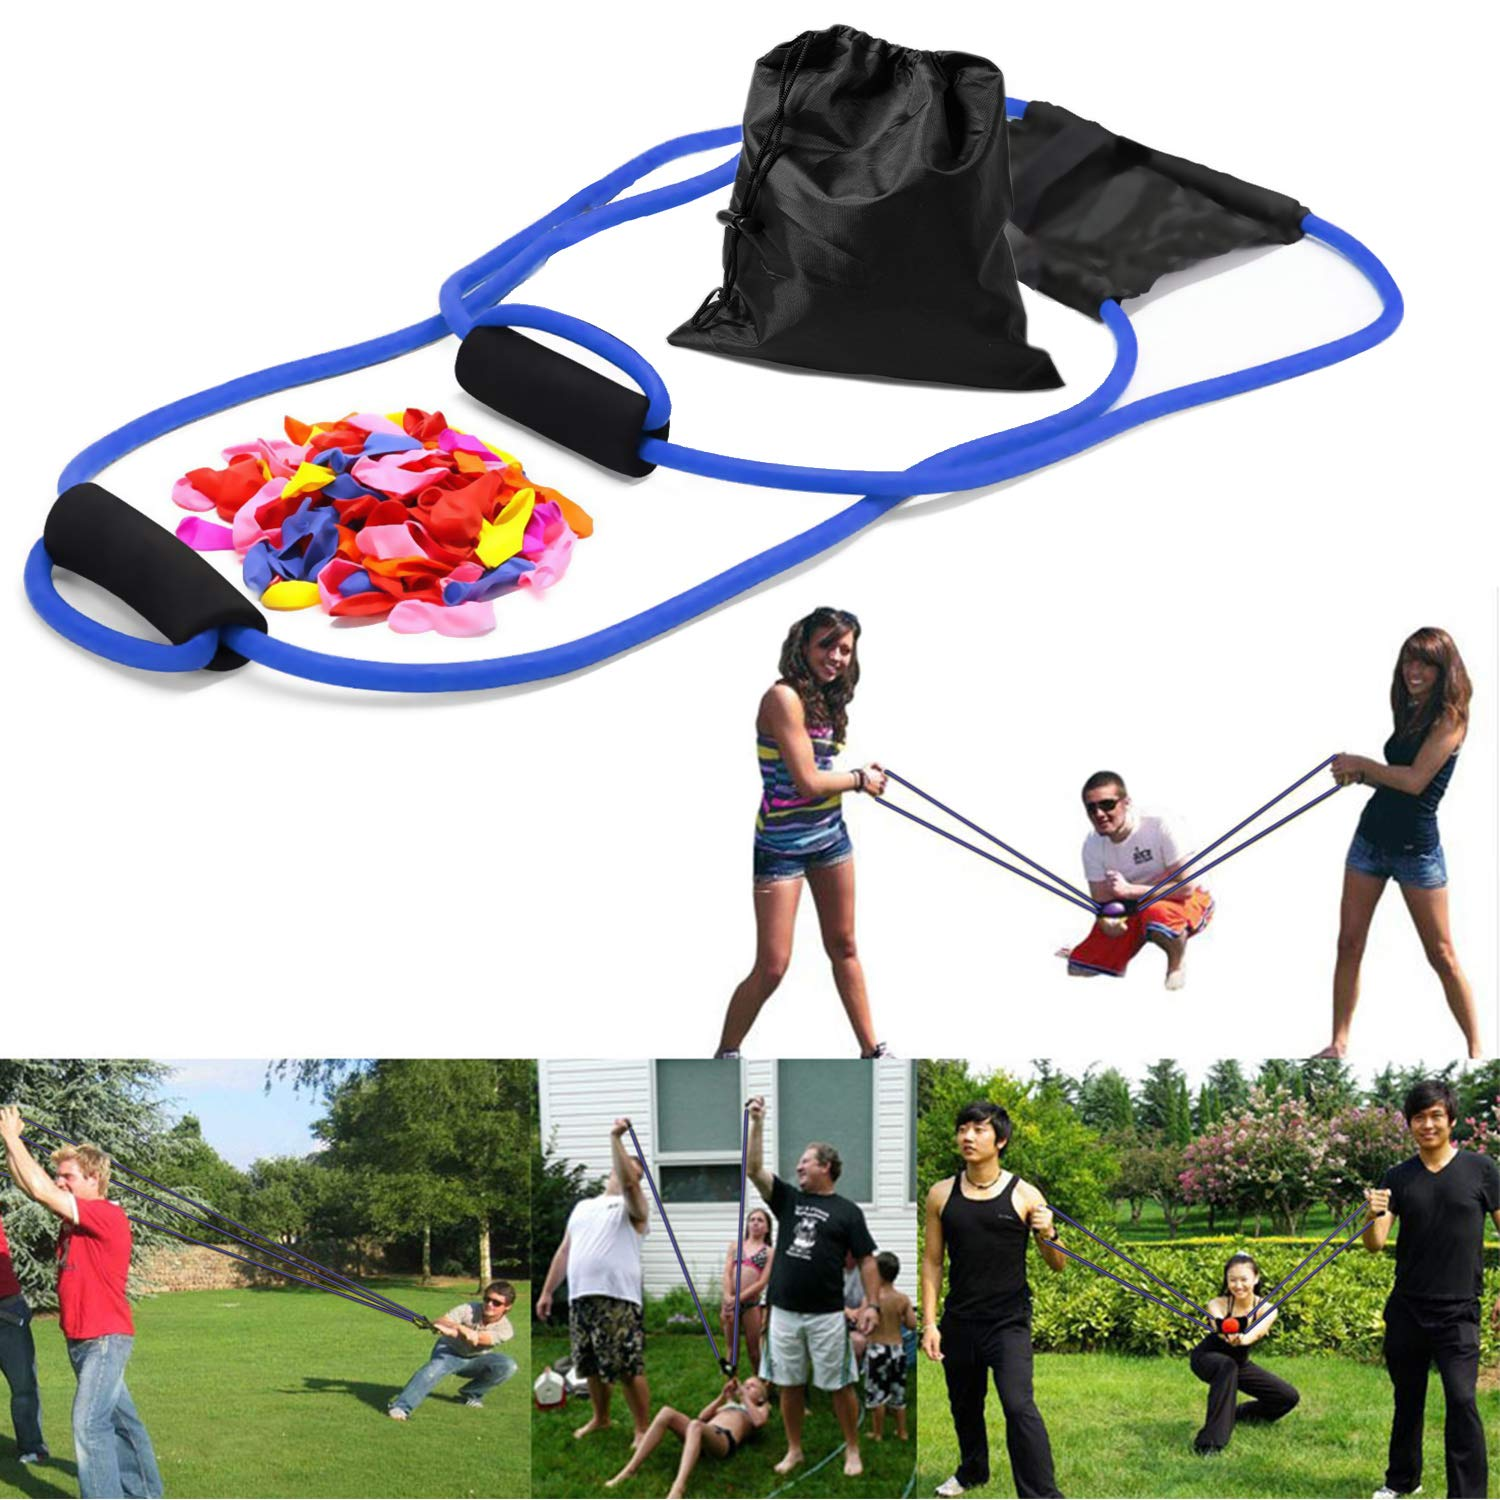 YHmall 300 Yard 3 Person Water Balloon Launcher with 500 Water Balloons Heavy Duty Water Balloon Cannon Slingshot Fight Pool Party Toys for Kids and Adults